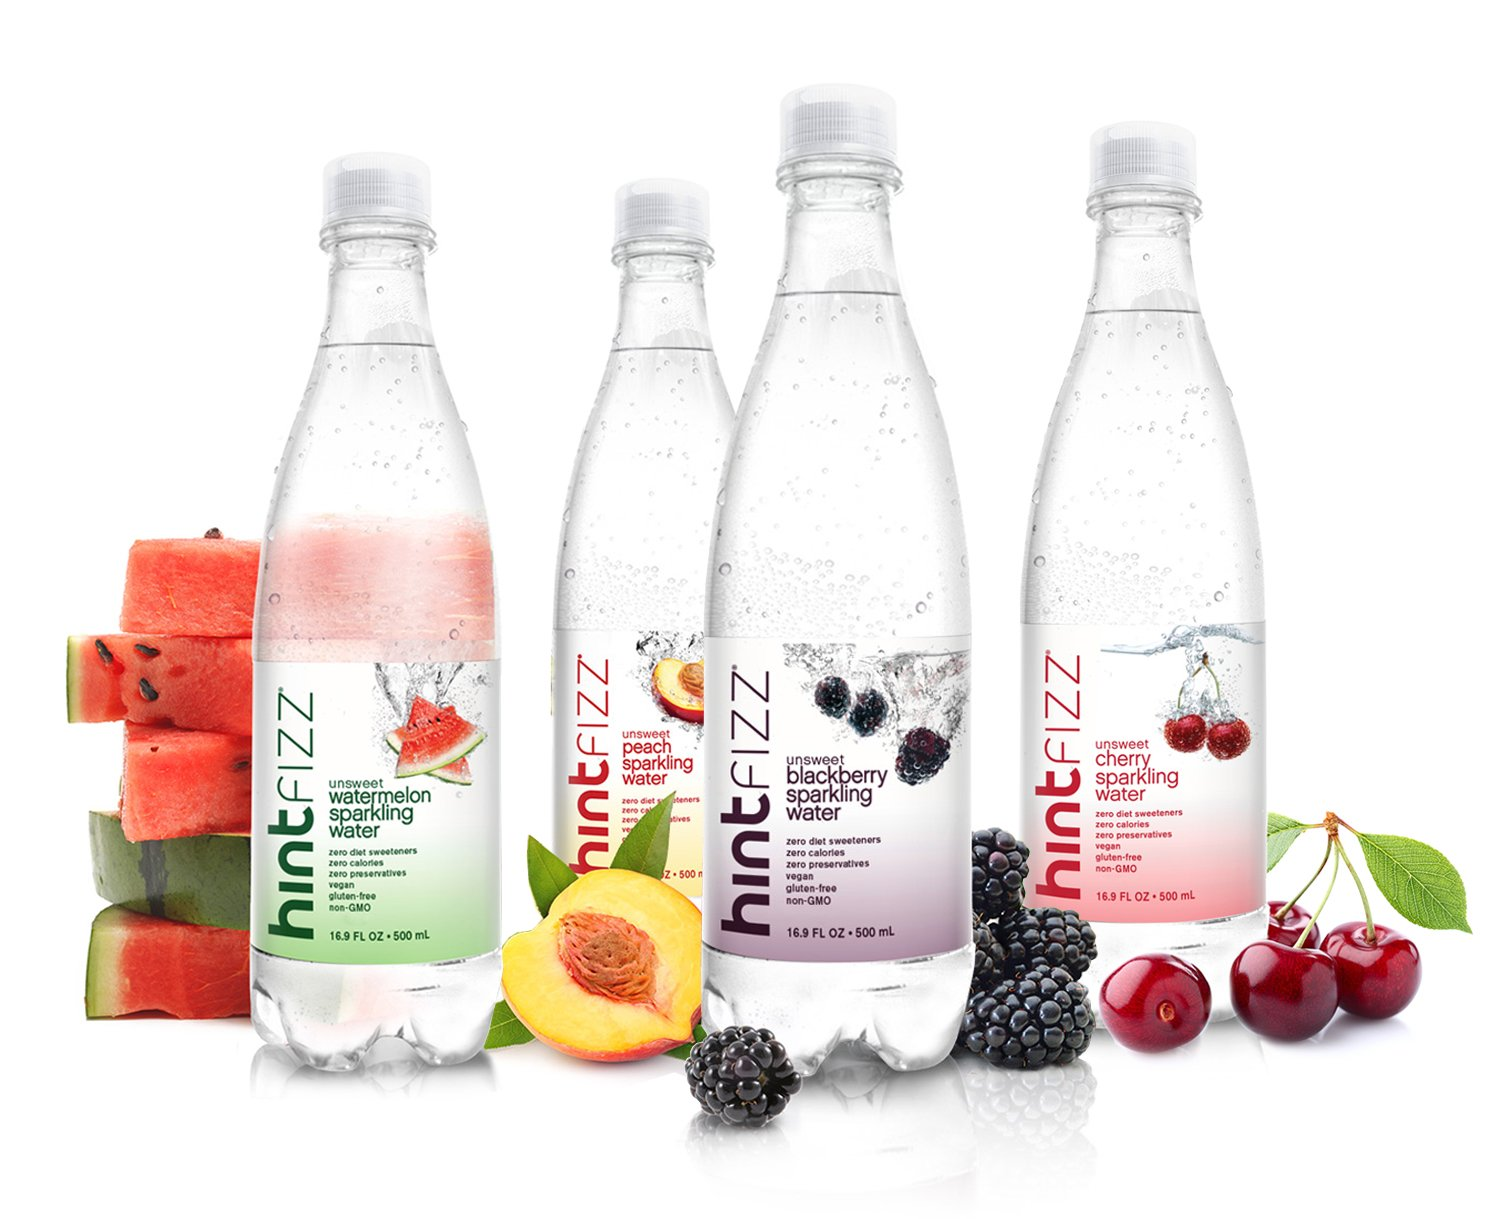 Hint Fizz Sparkling Water 4-Flavor Variety Pack (Pack of 12) 16.9 Ounce Bottles, Unsweetened Sparkling Water, Zero Sugar, Zero Calories, Zero Artificial Sweeteners